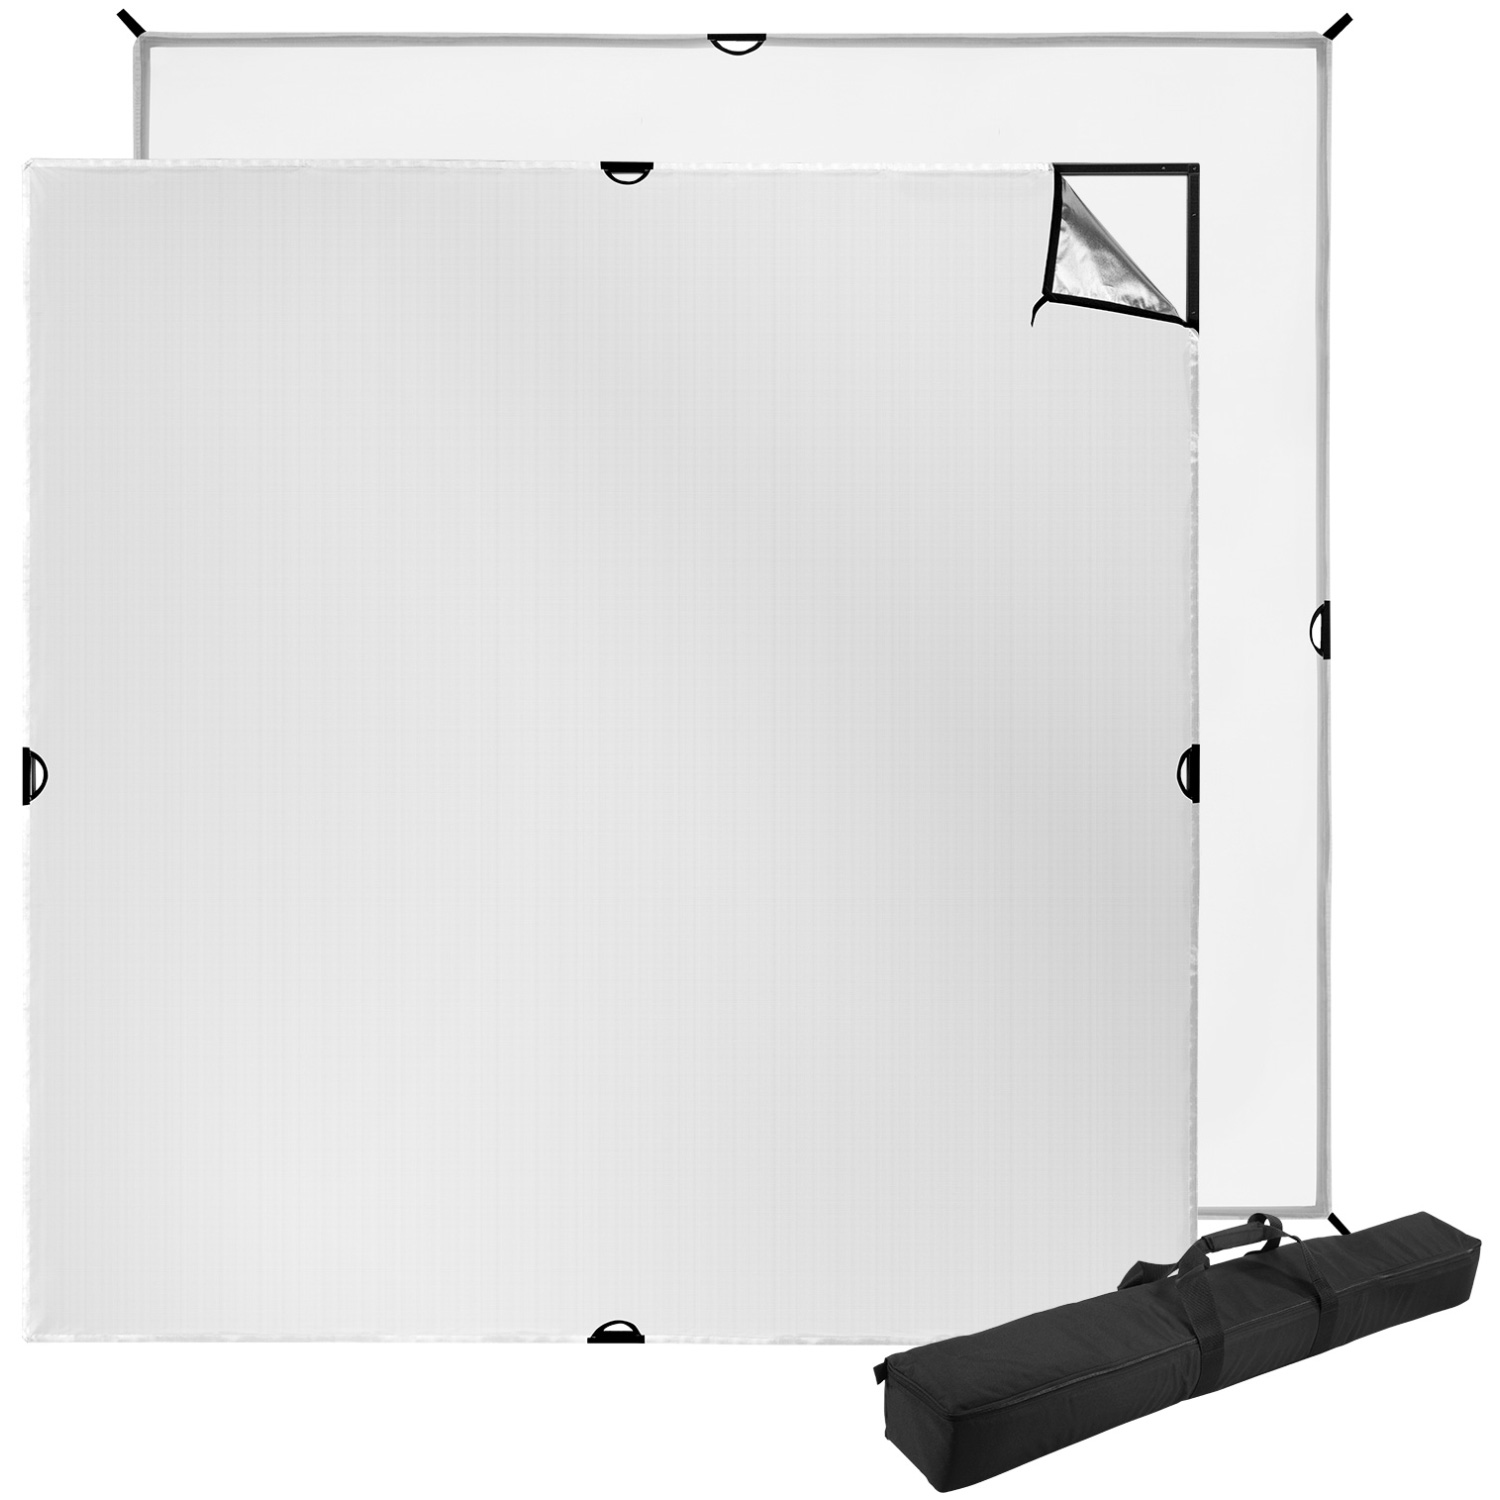 Scrim Jim Cine Kit (8' x 8')